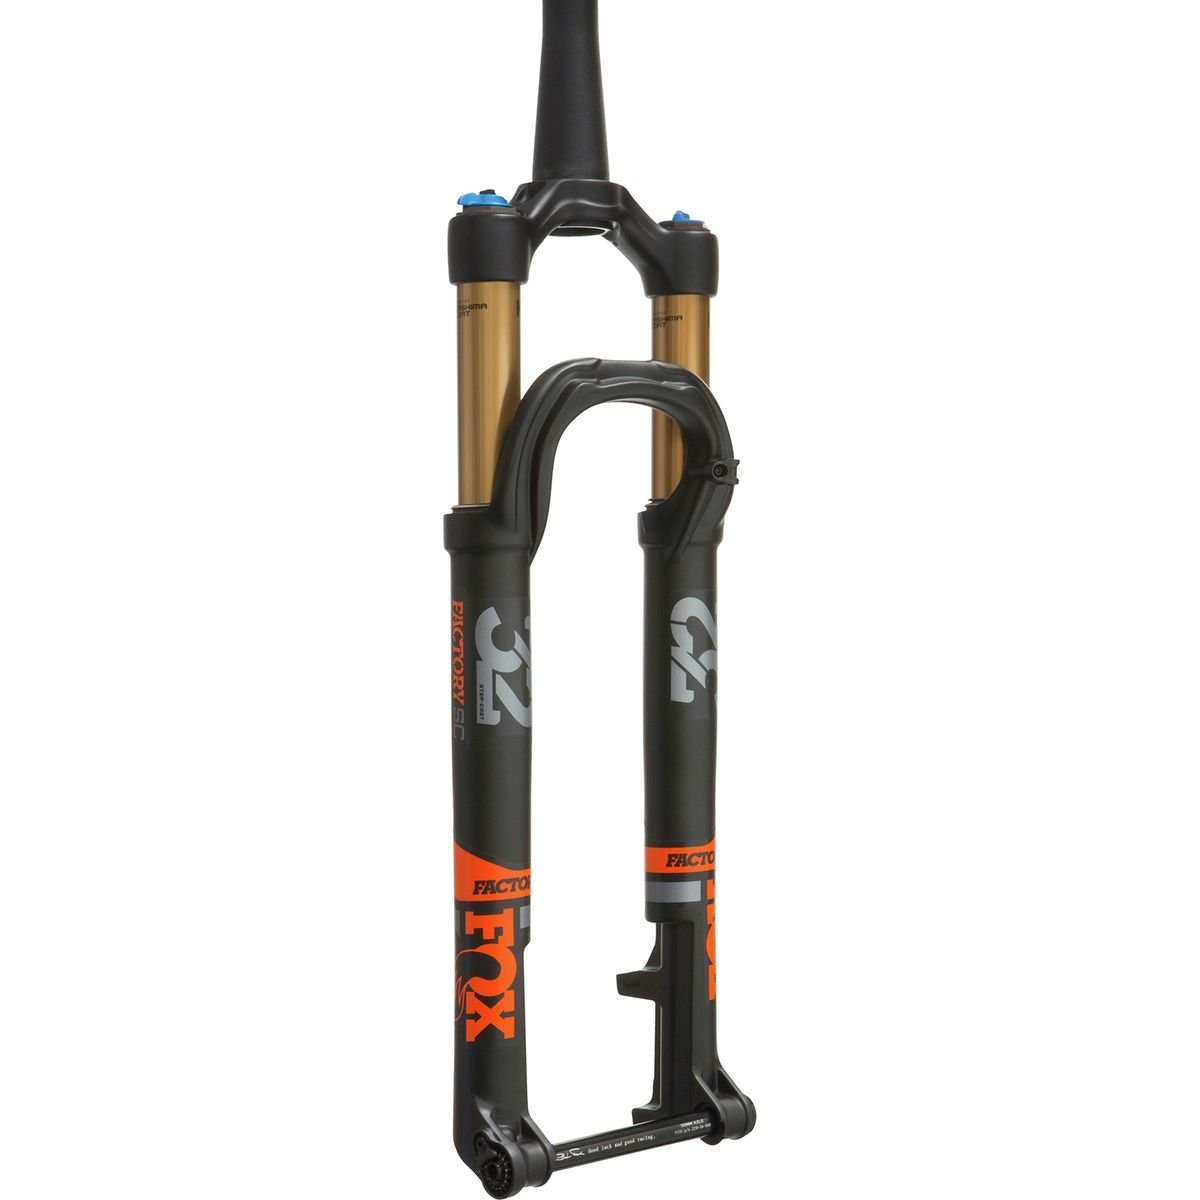 Fox Racing Shox 32 Float SC AX 40 3Pos-Adj FIT4 Fork